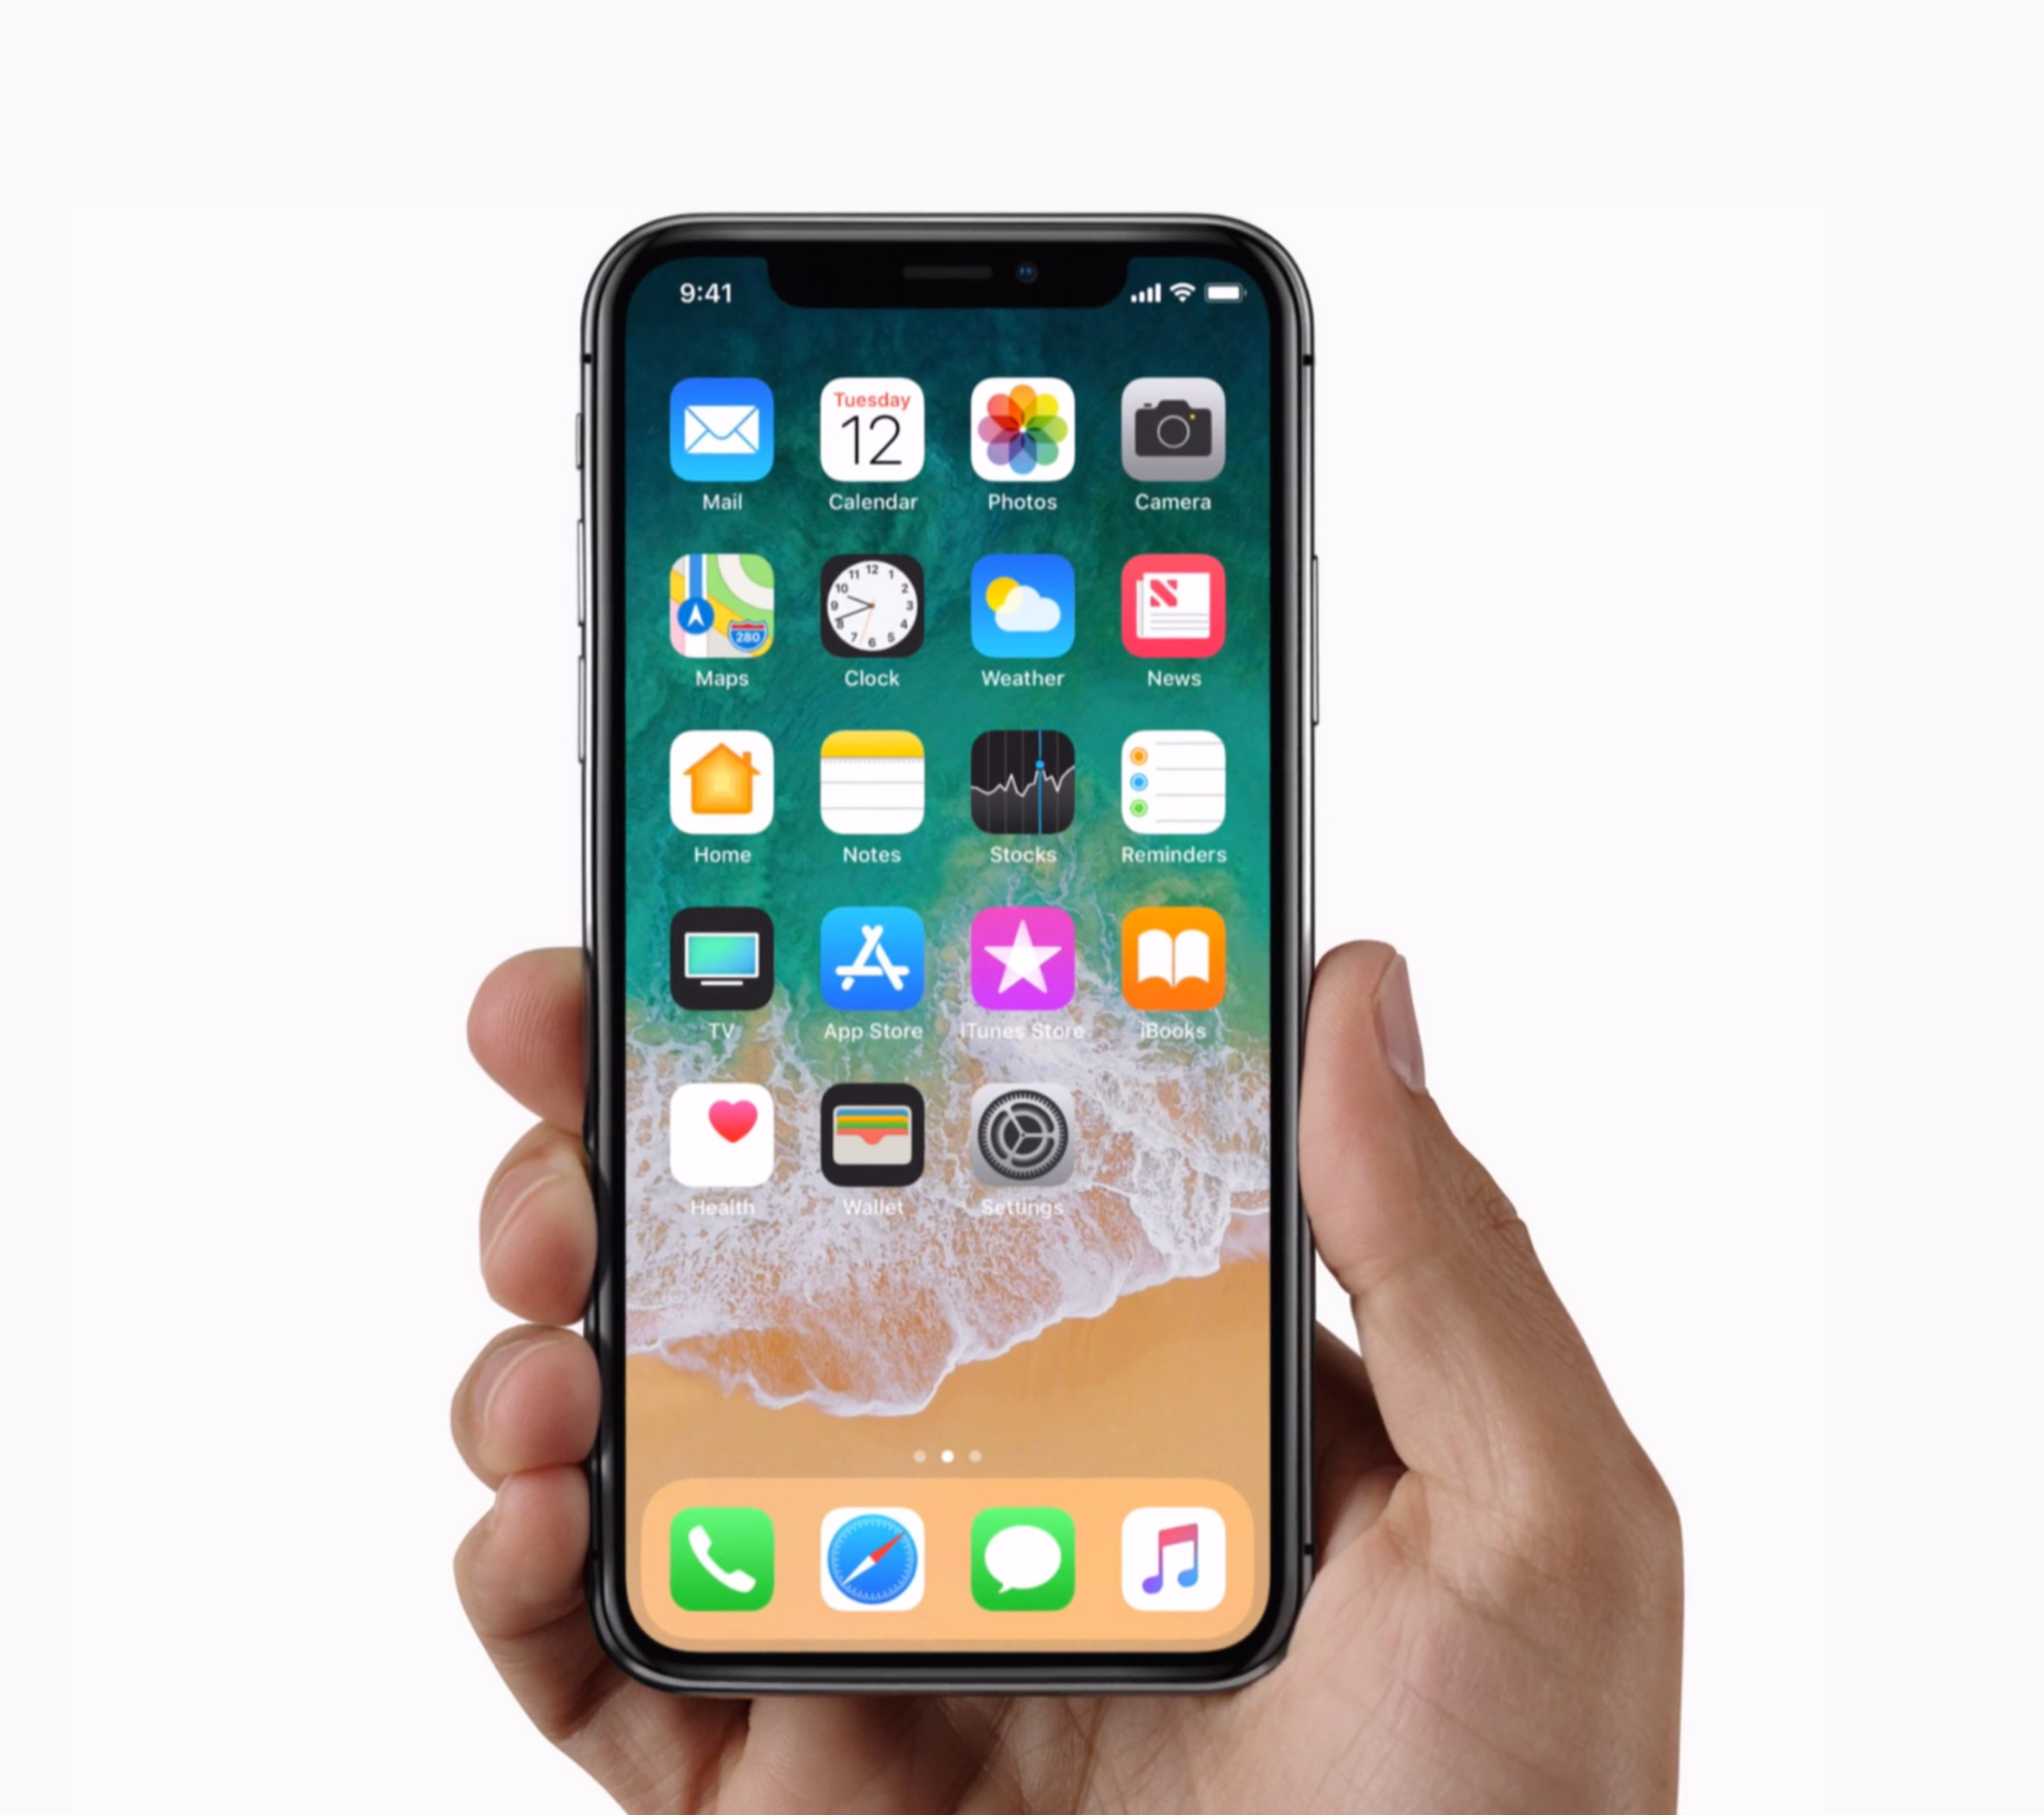 Apple announces iPhone X with Face ID technology